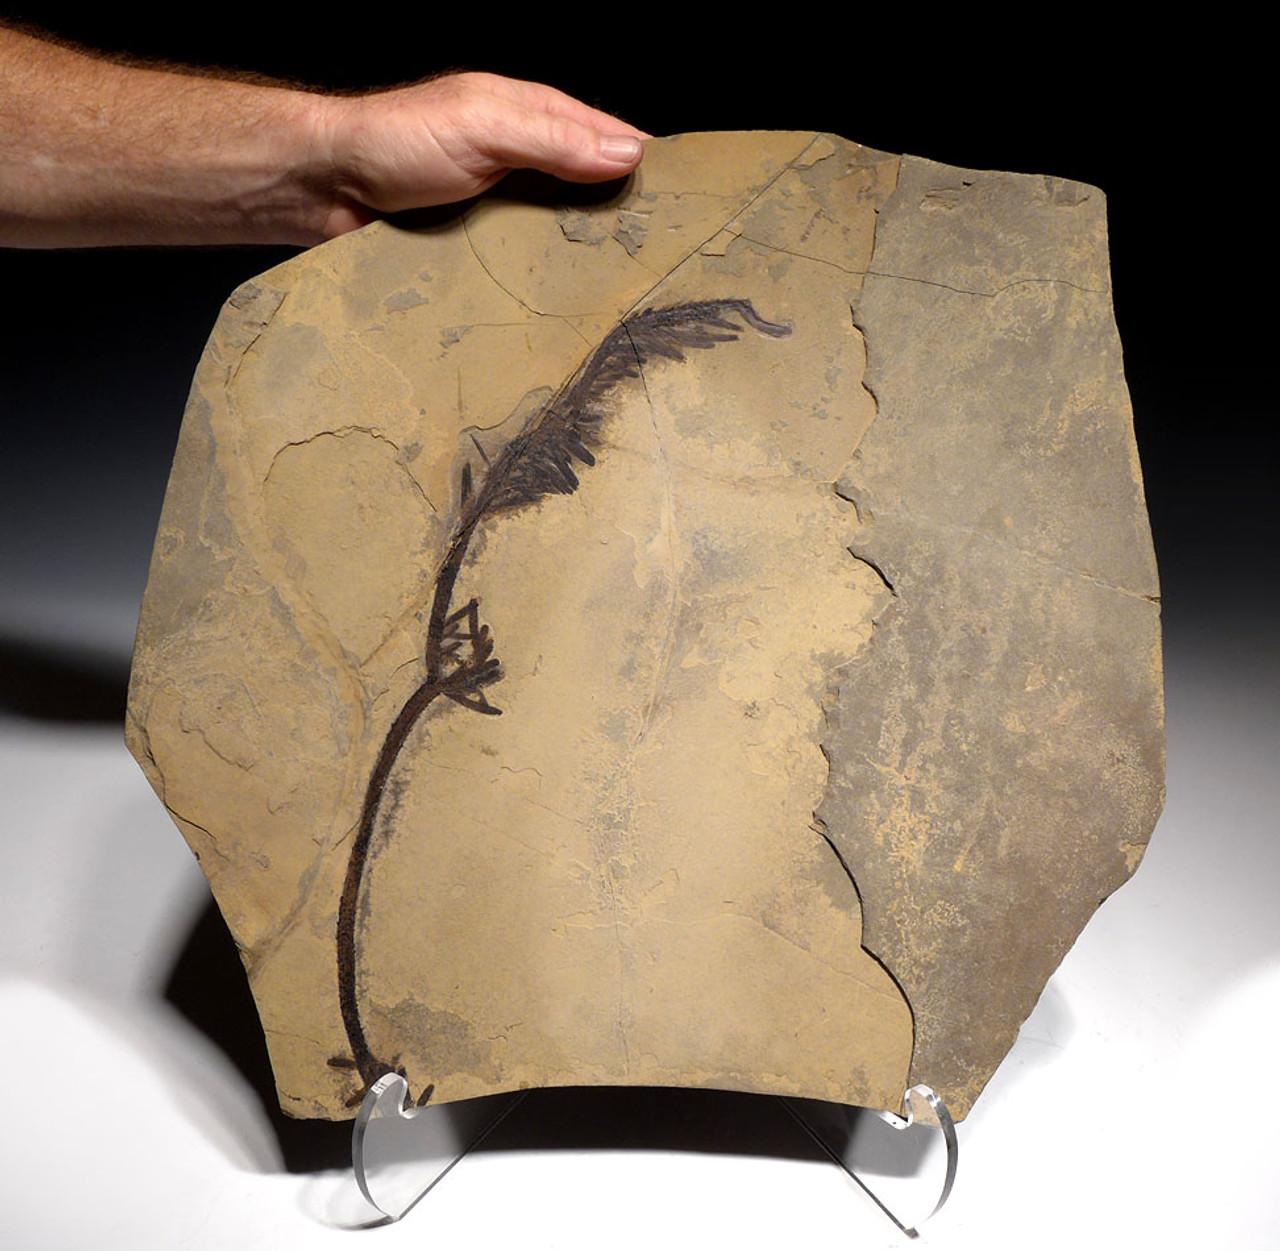 RARE LARGE PERMIAN CORDAITES PLANT FOSSIL BRANCH FROM GERMANY WITH COMPLETE PRESERVATION *PMPX001